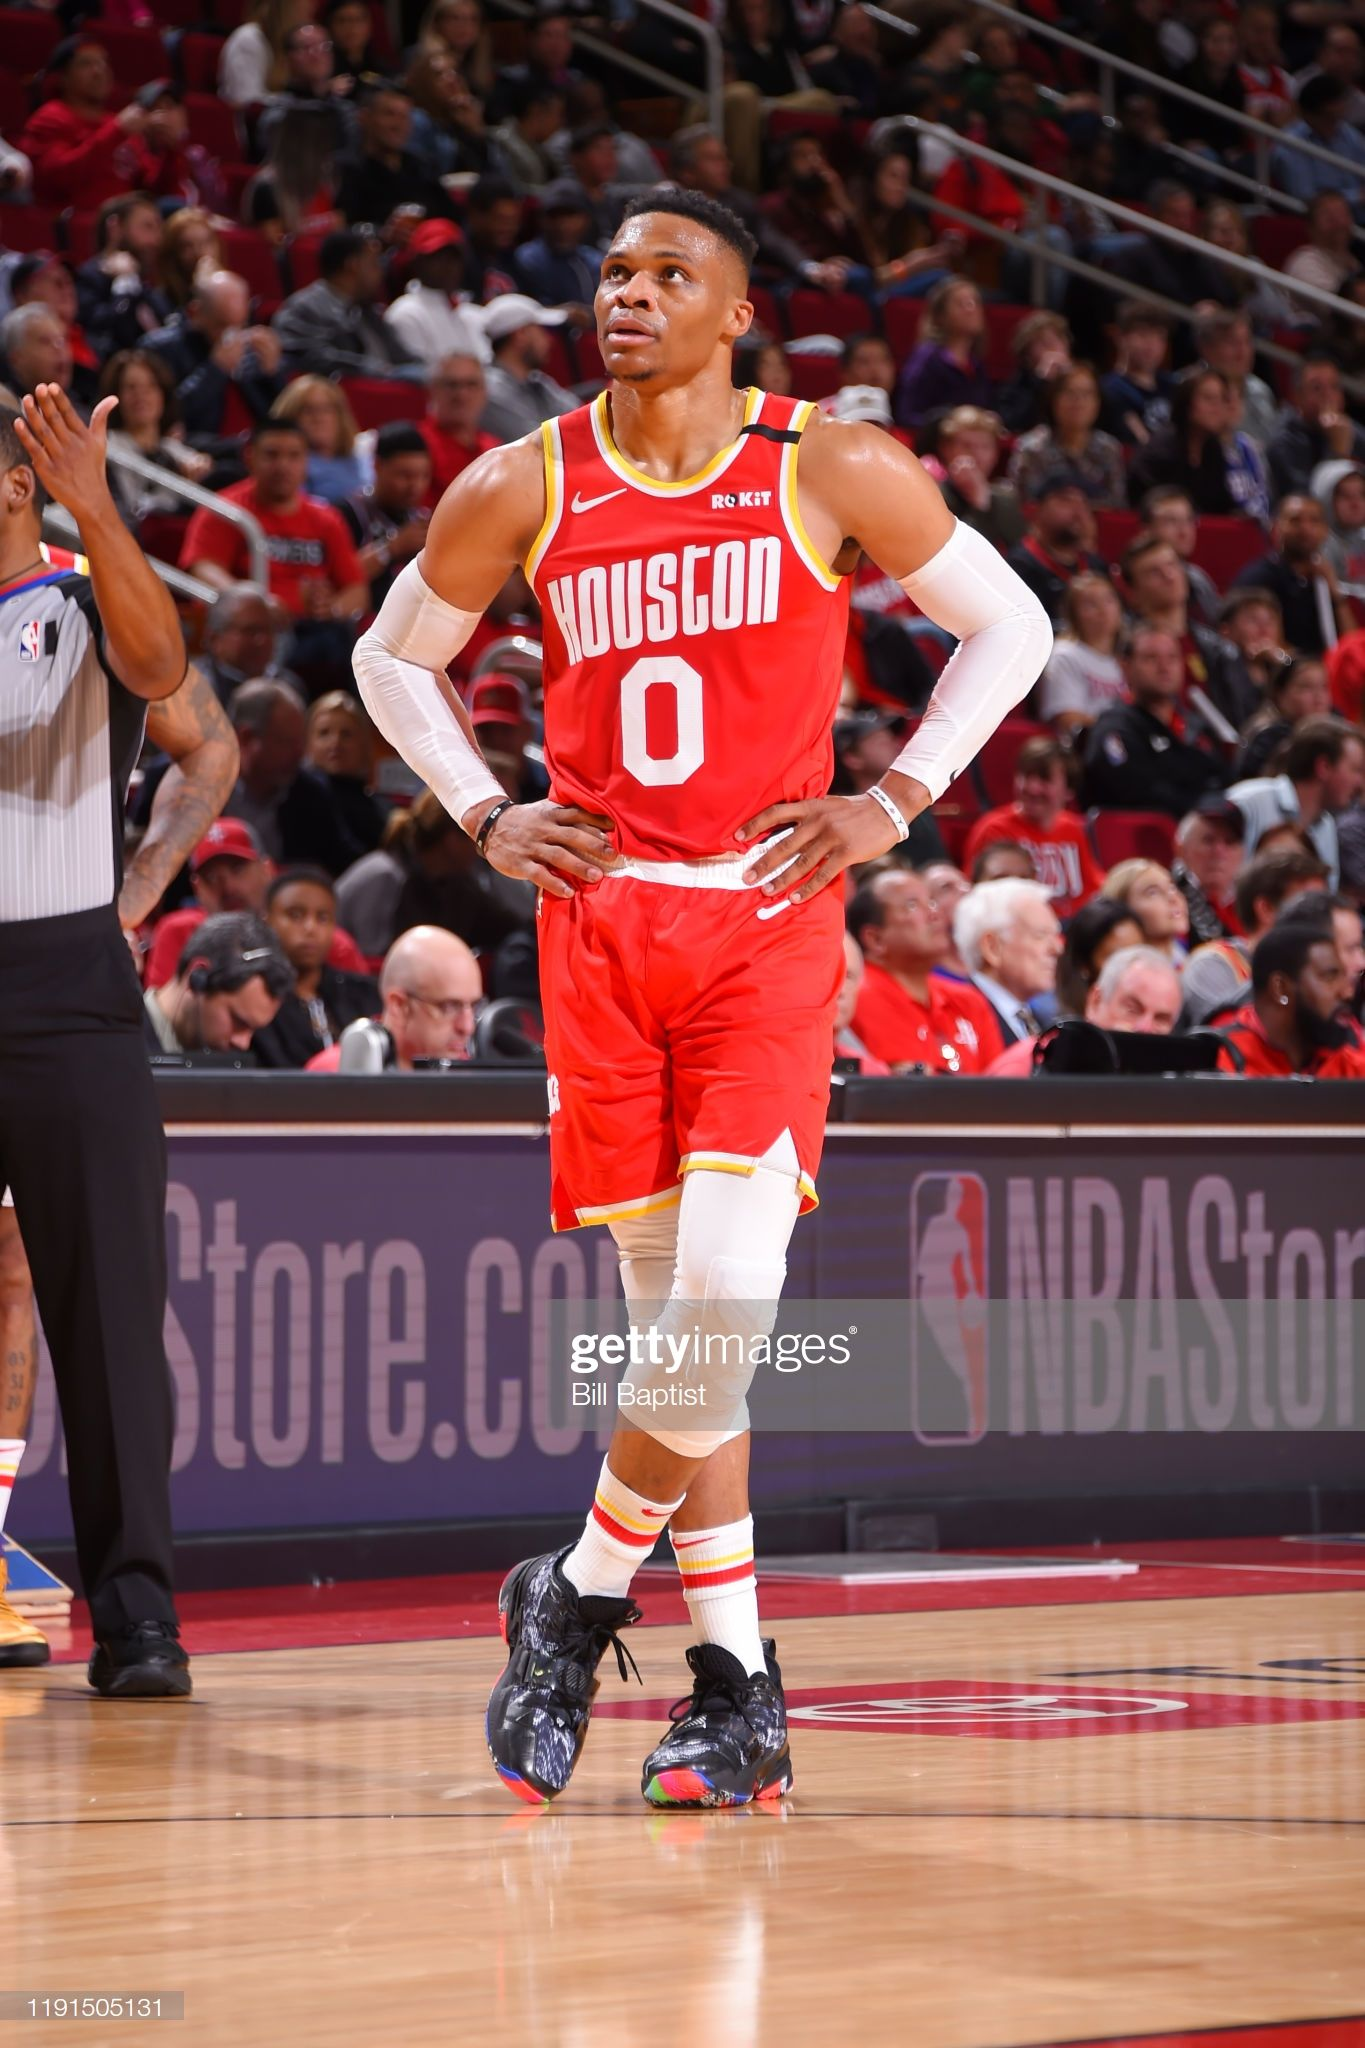 Russell Westbrook Of The Houston Rockets Looks On During The Game In 2020 Houston Rockets Westbrook Houston Rockets Basketball